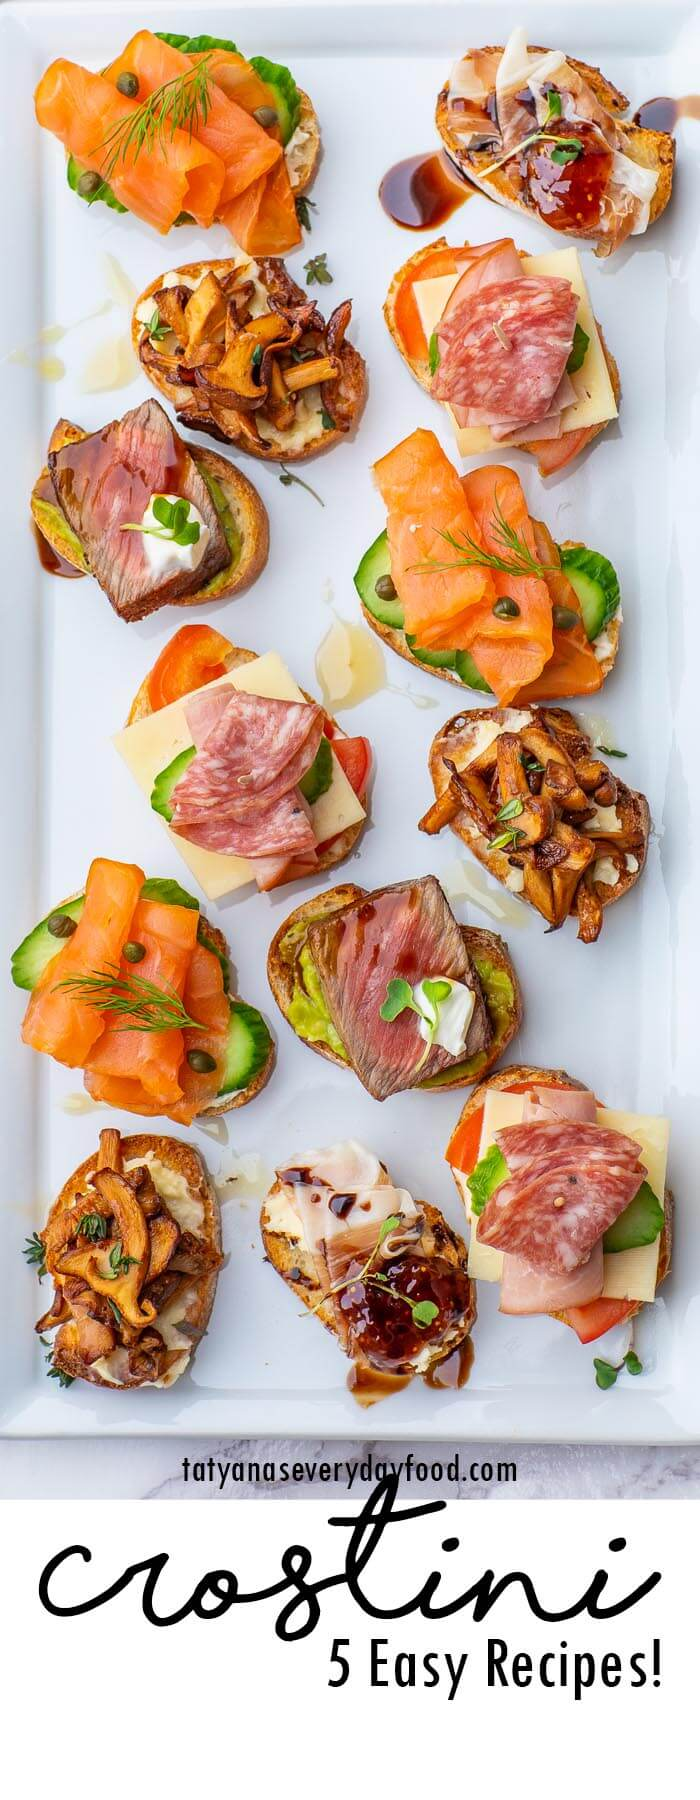 5 Easy Crostini Recipes